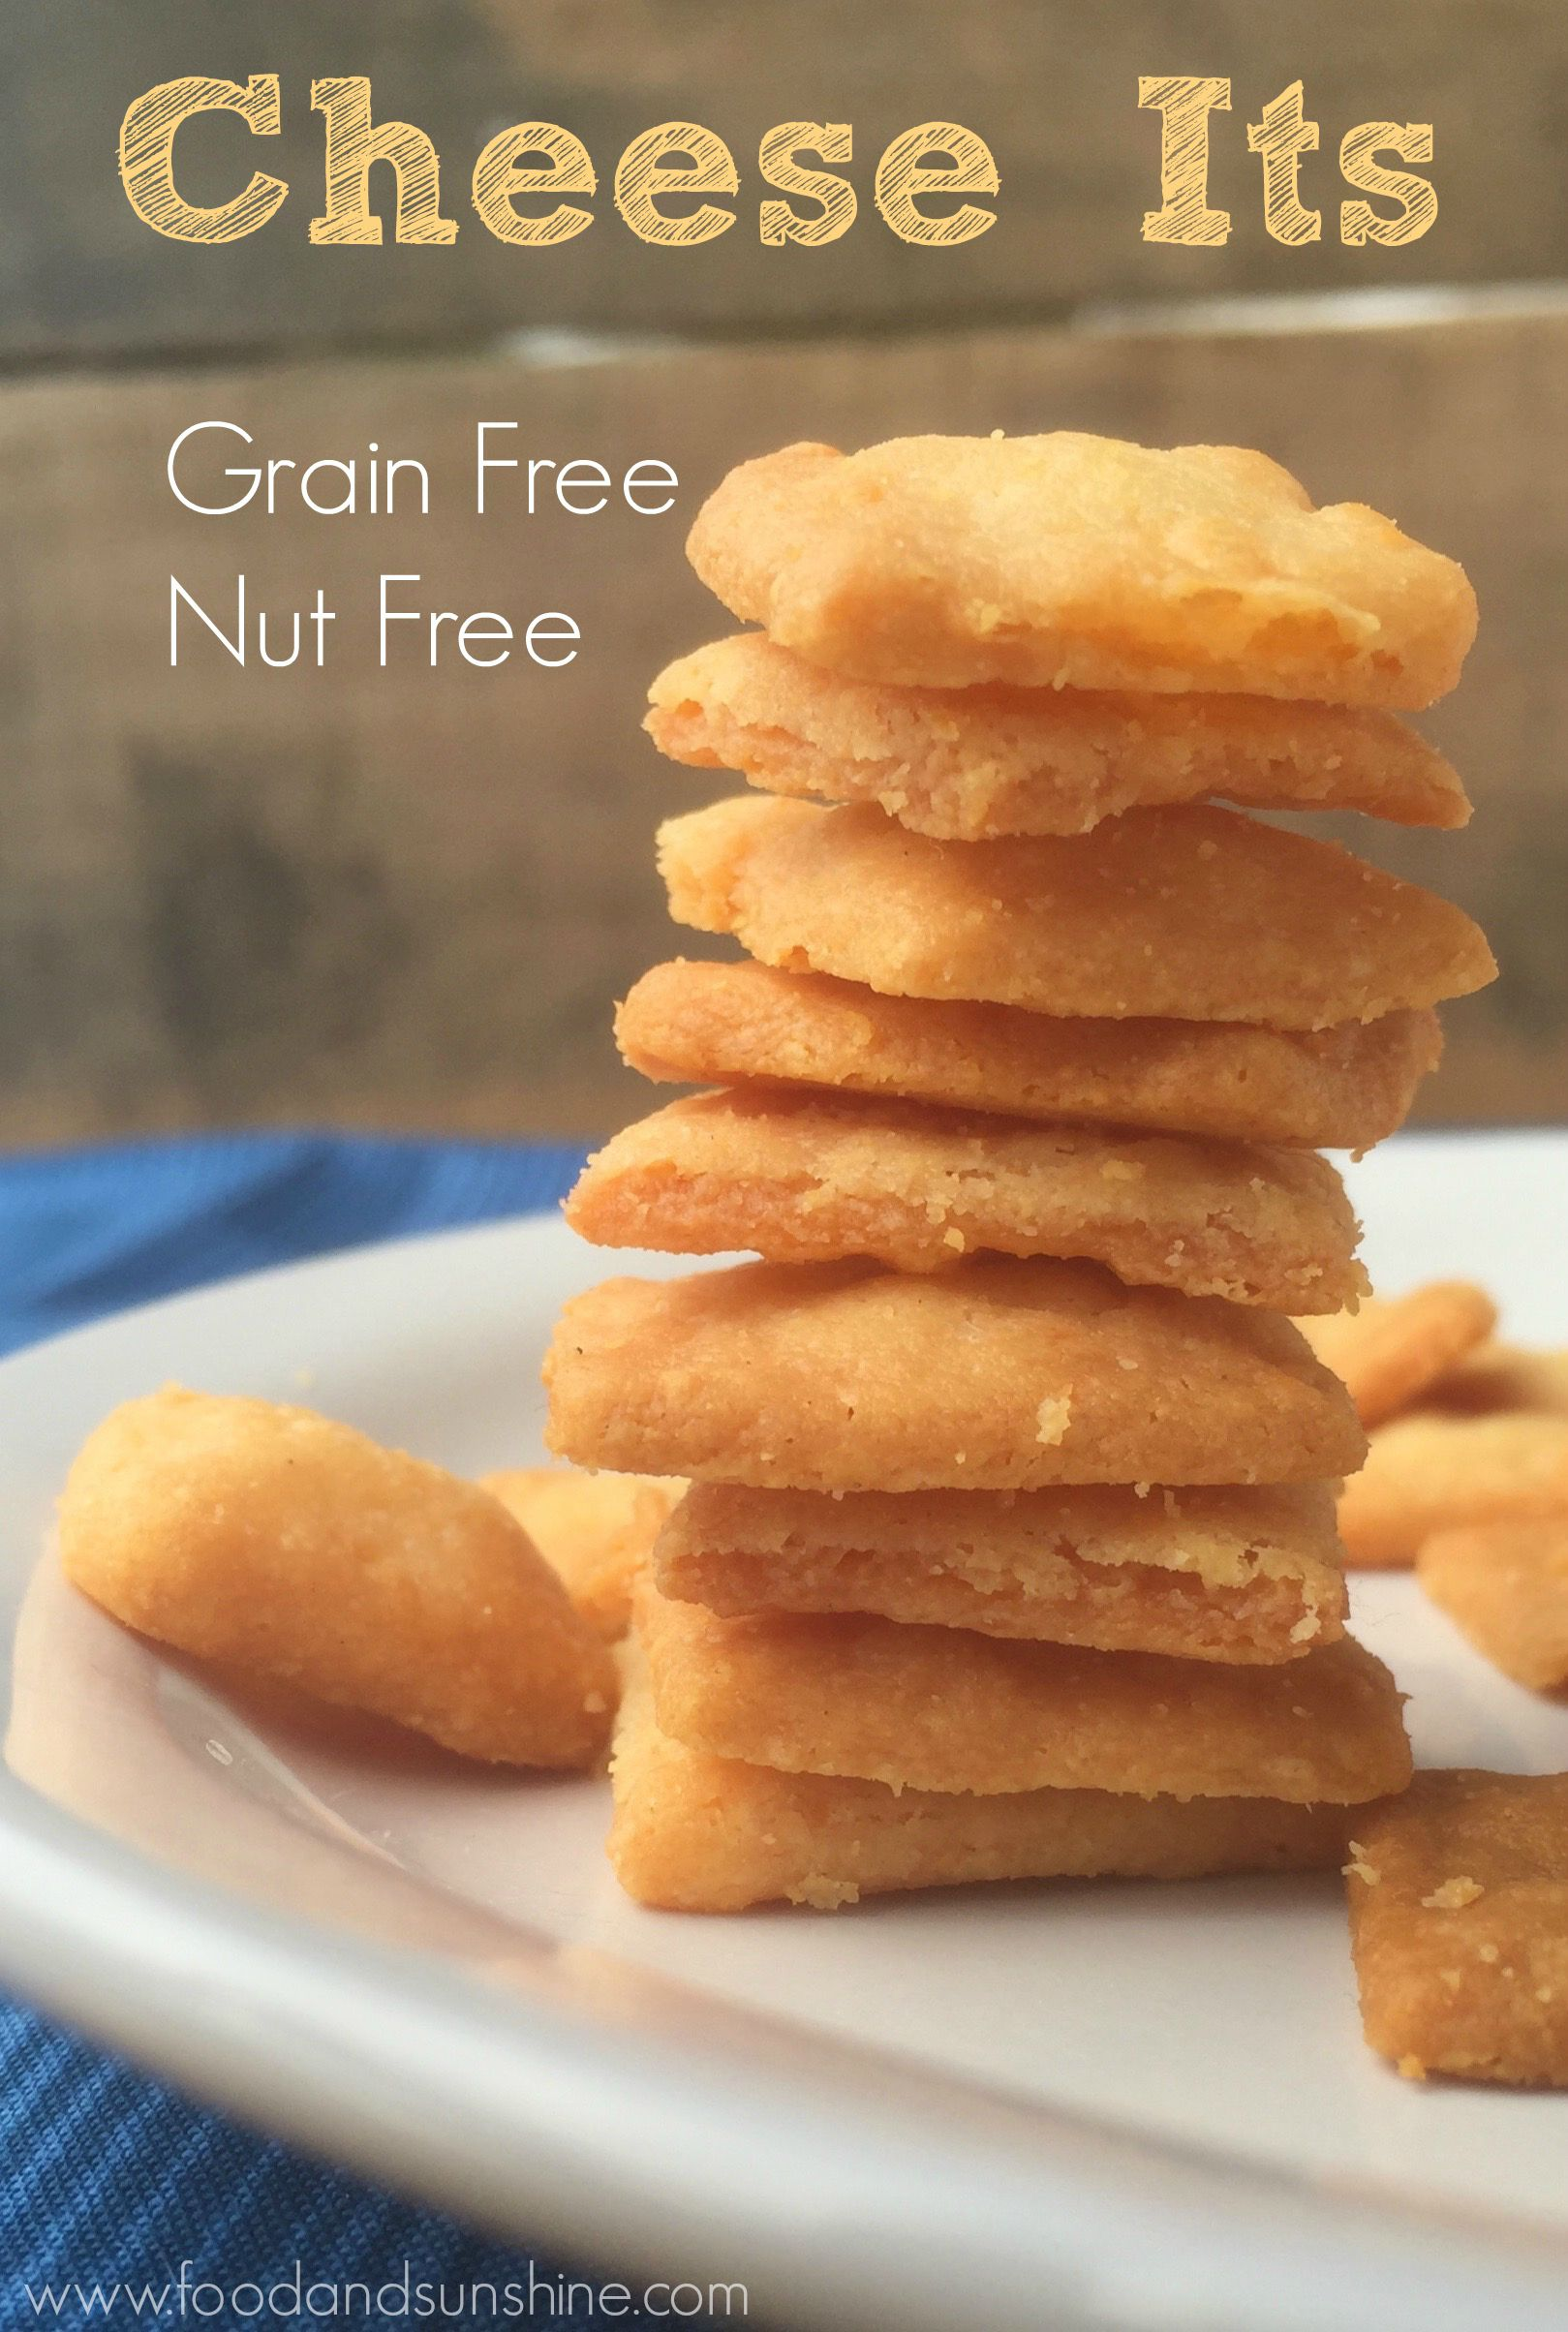 Grain Free Nut Free Cheese Its Gluten Free Primal Food And